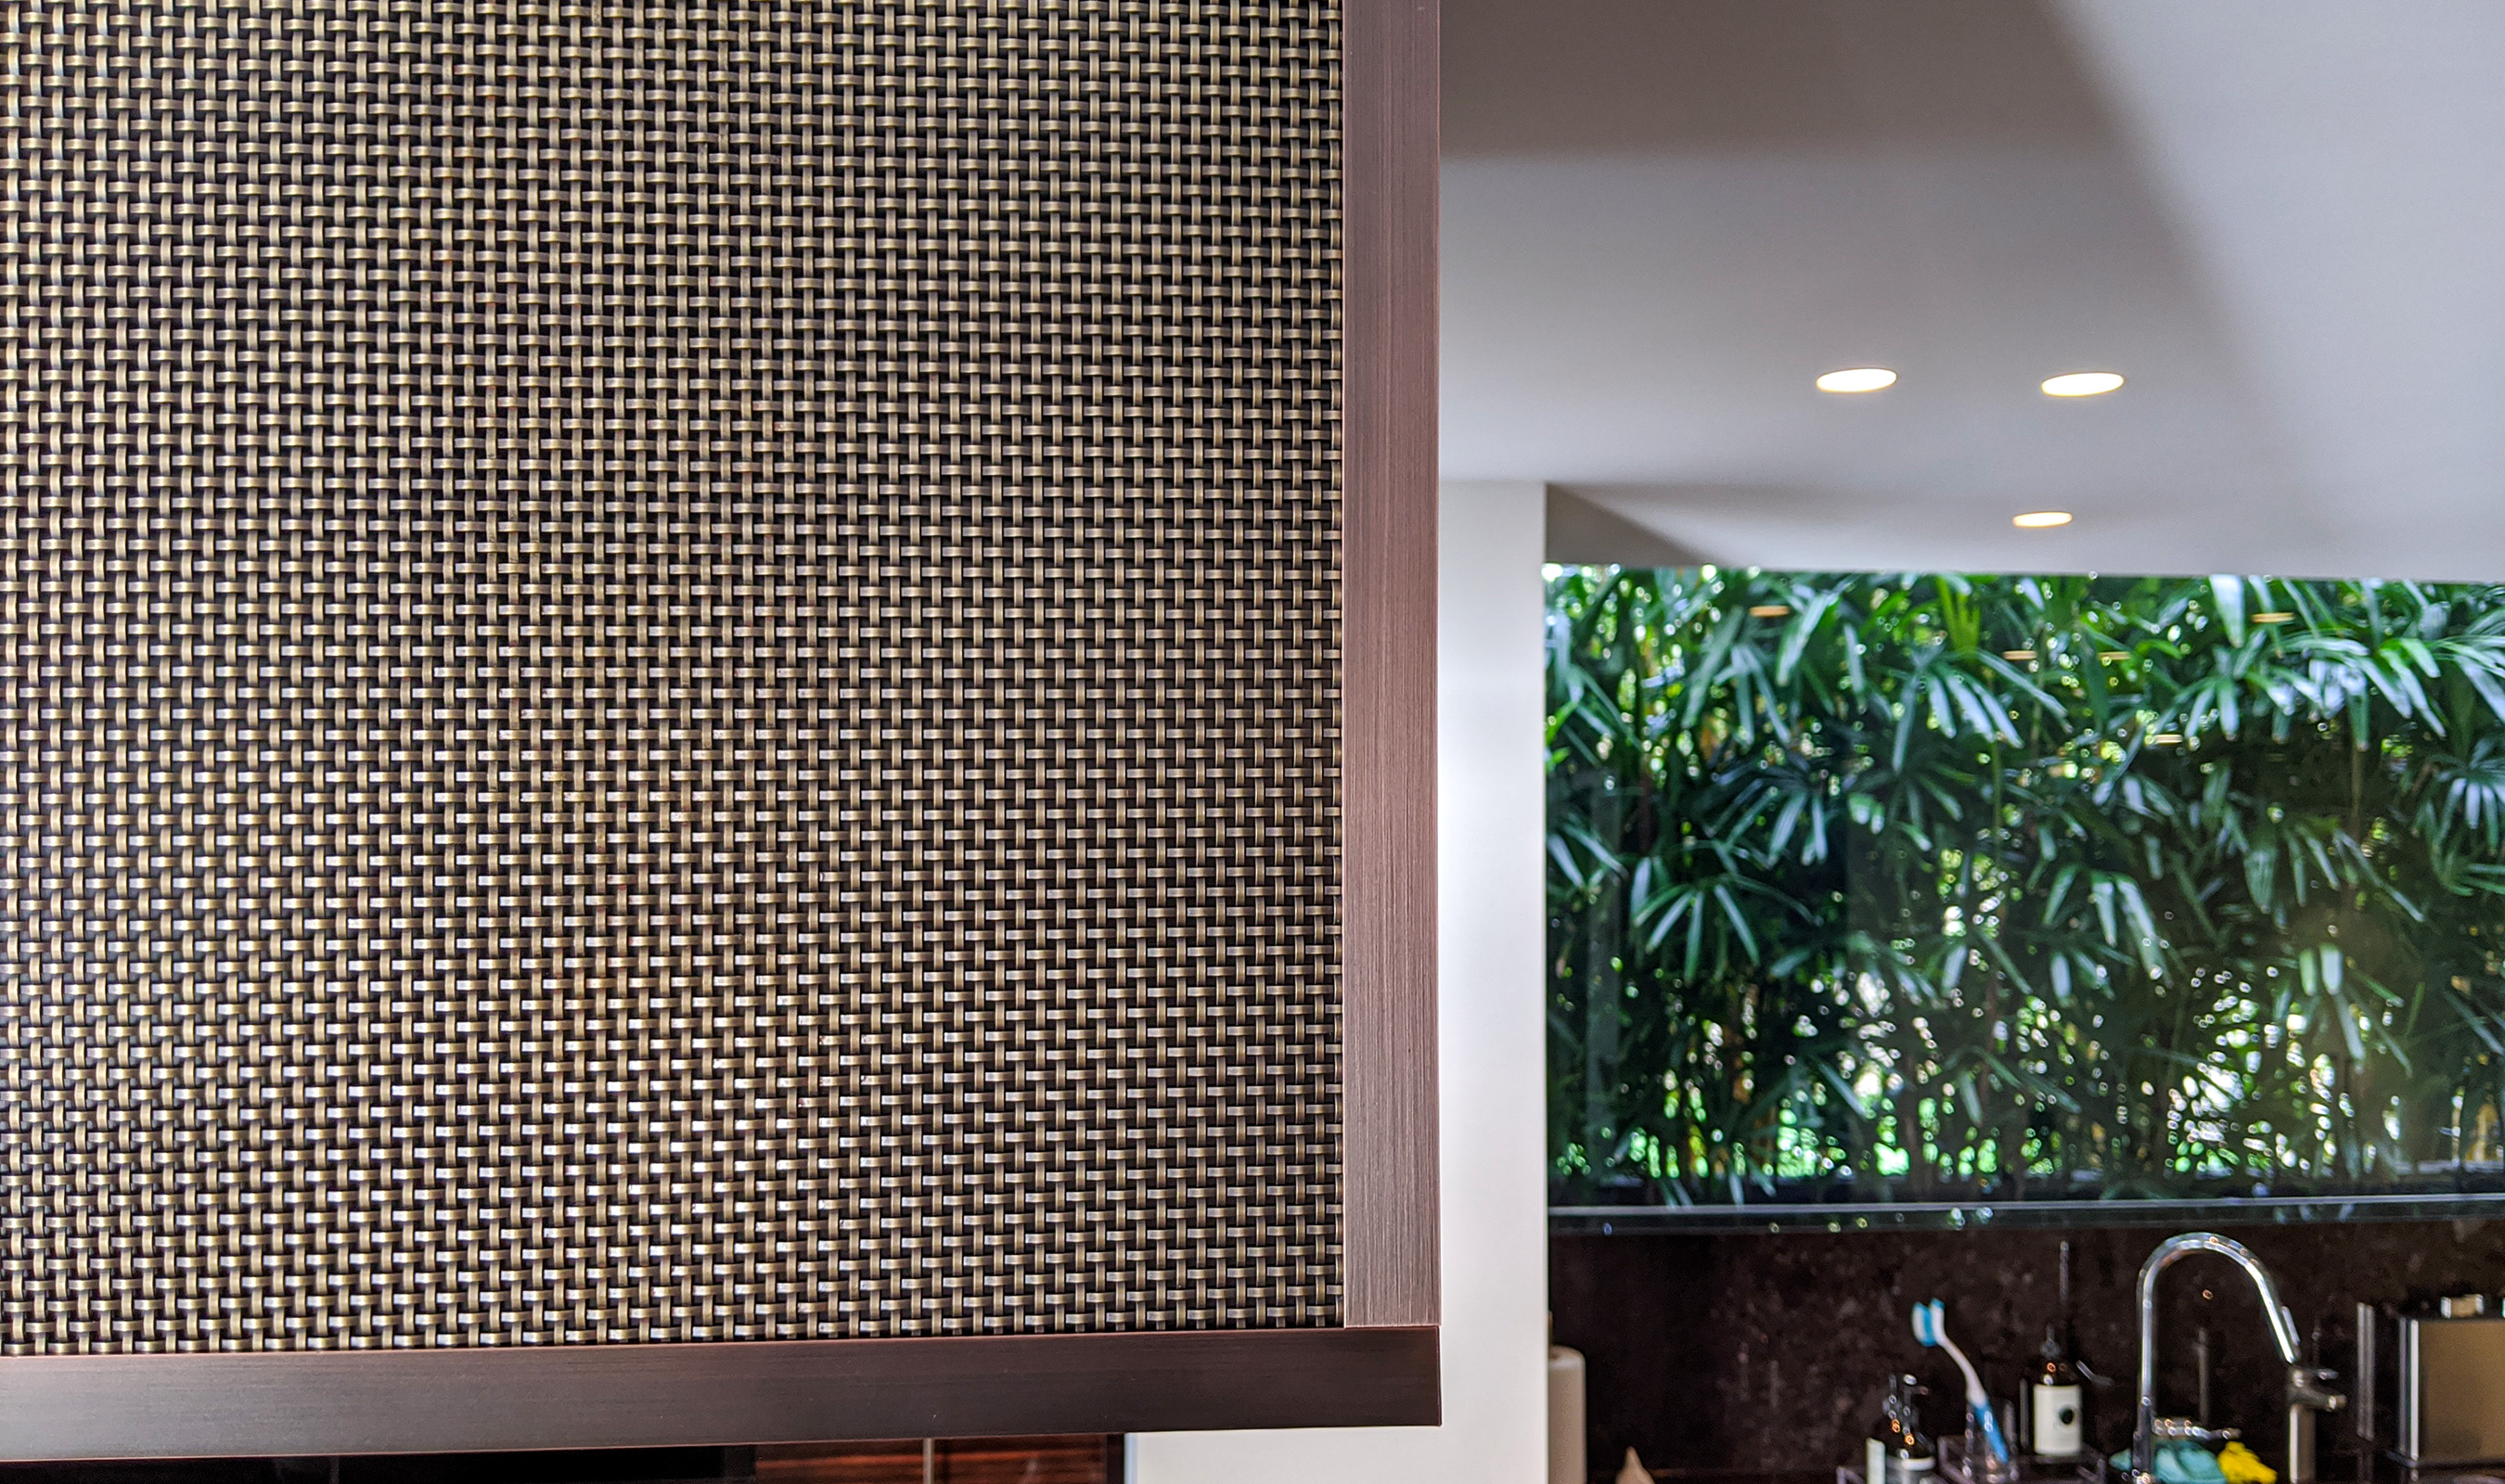 The modern range hood in this Australian home uses Banker Wire's S-32 woven wire mesh plated in Antique Brass.